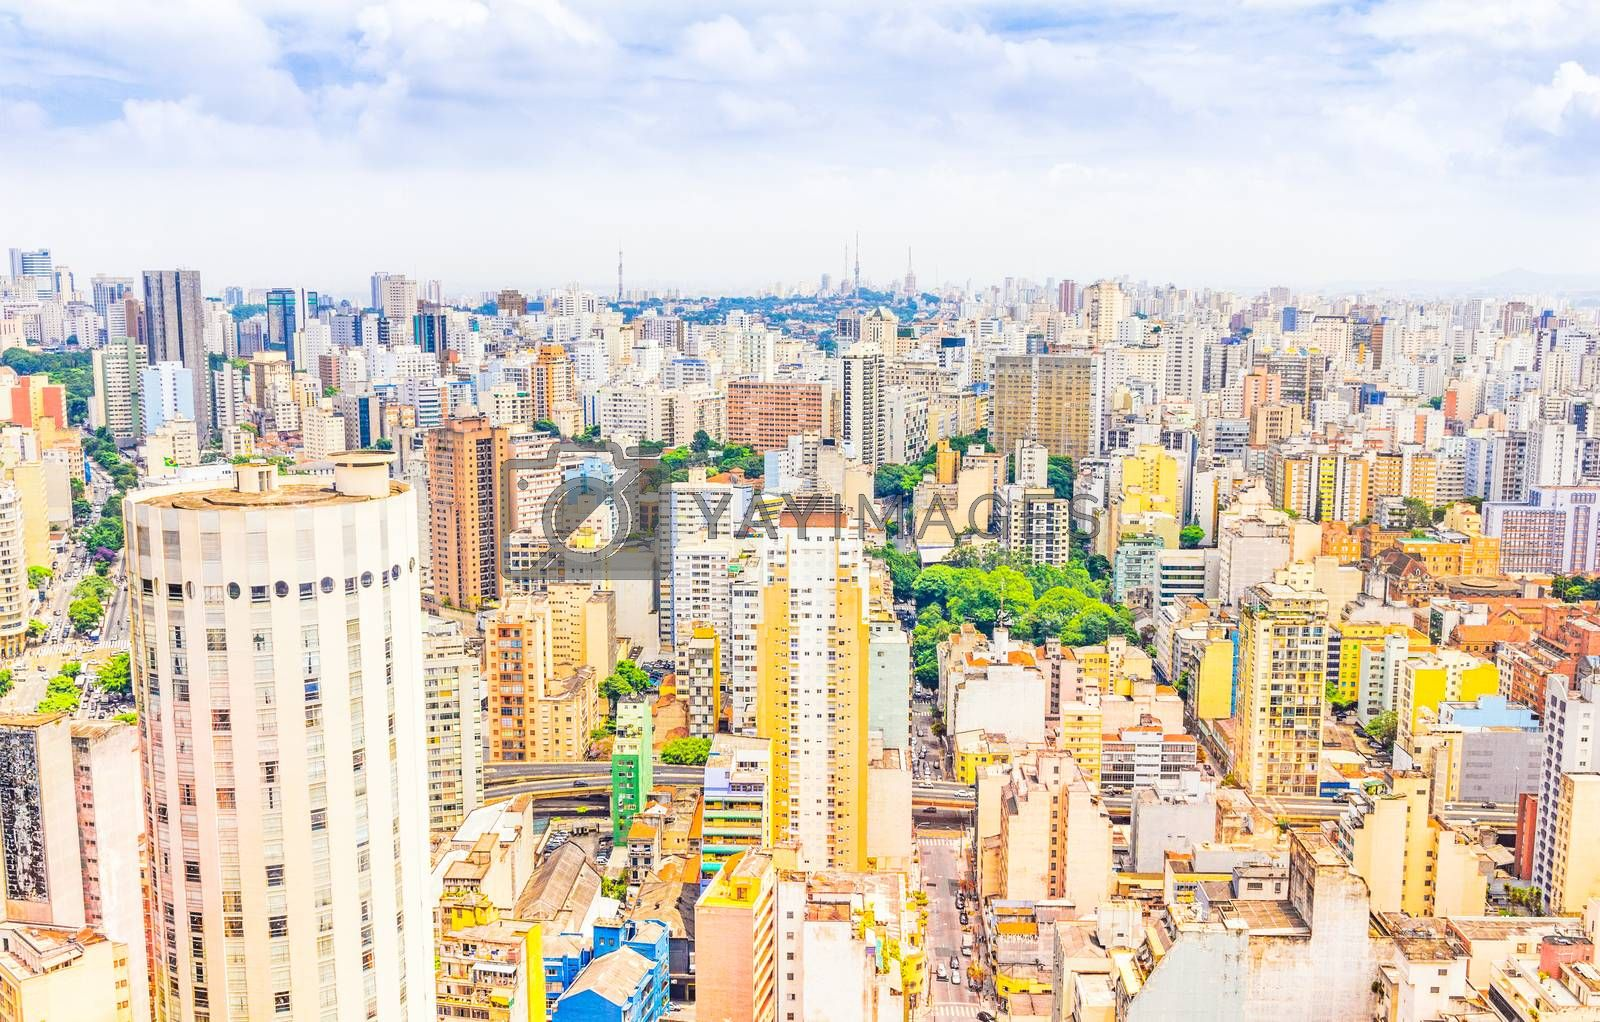 Royalty free image of View of buildings in Sao Paulo, Brazil by gianliguori